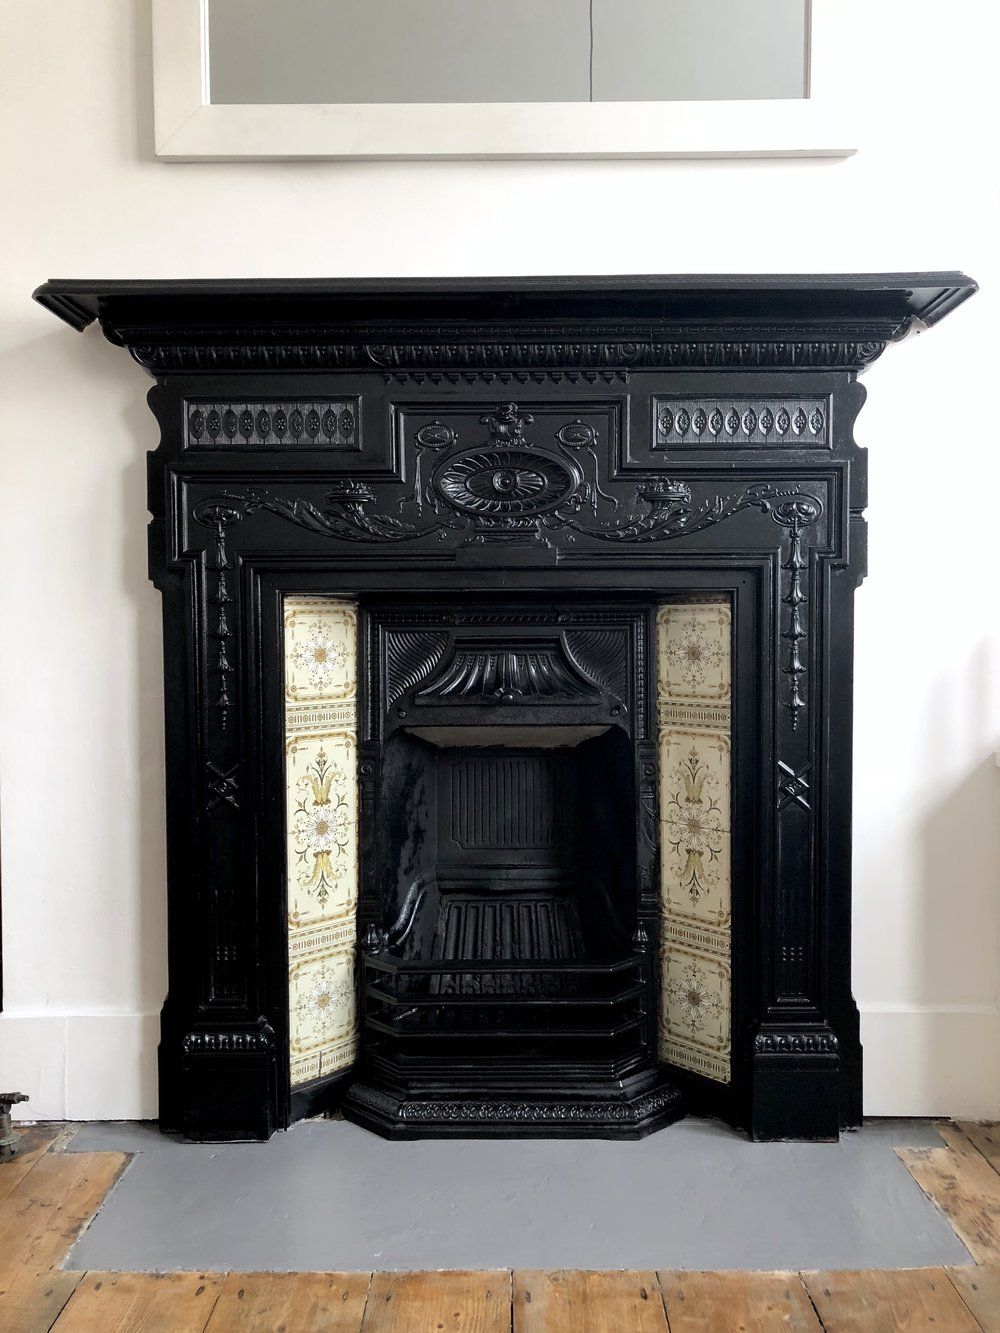 THE GROWN UP EDIT - VICTORIAN FIREPLACE